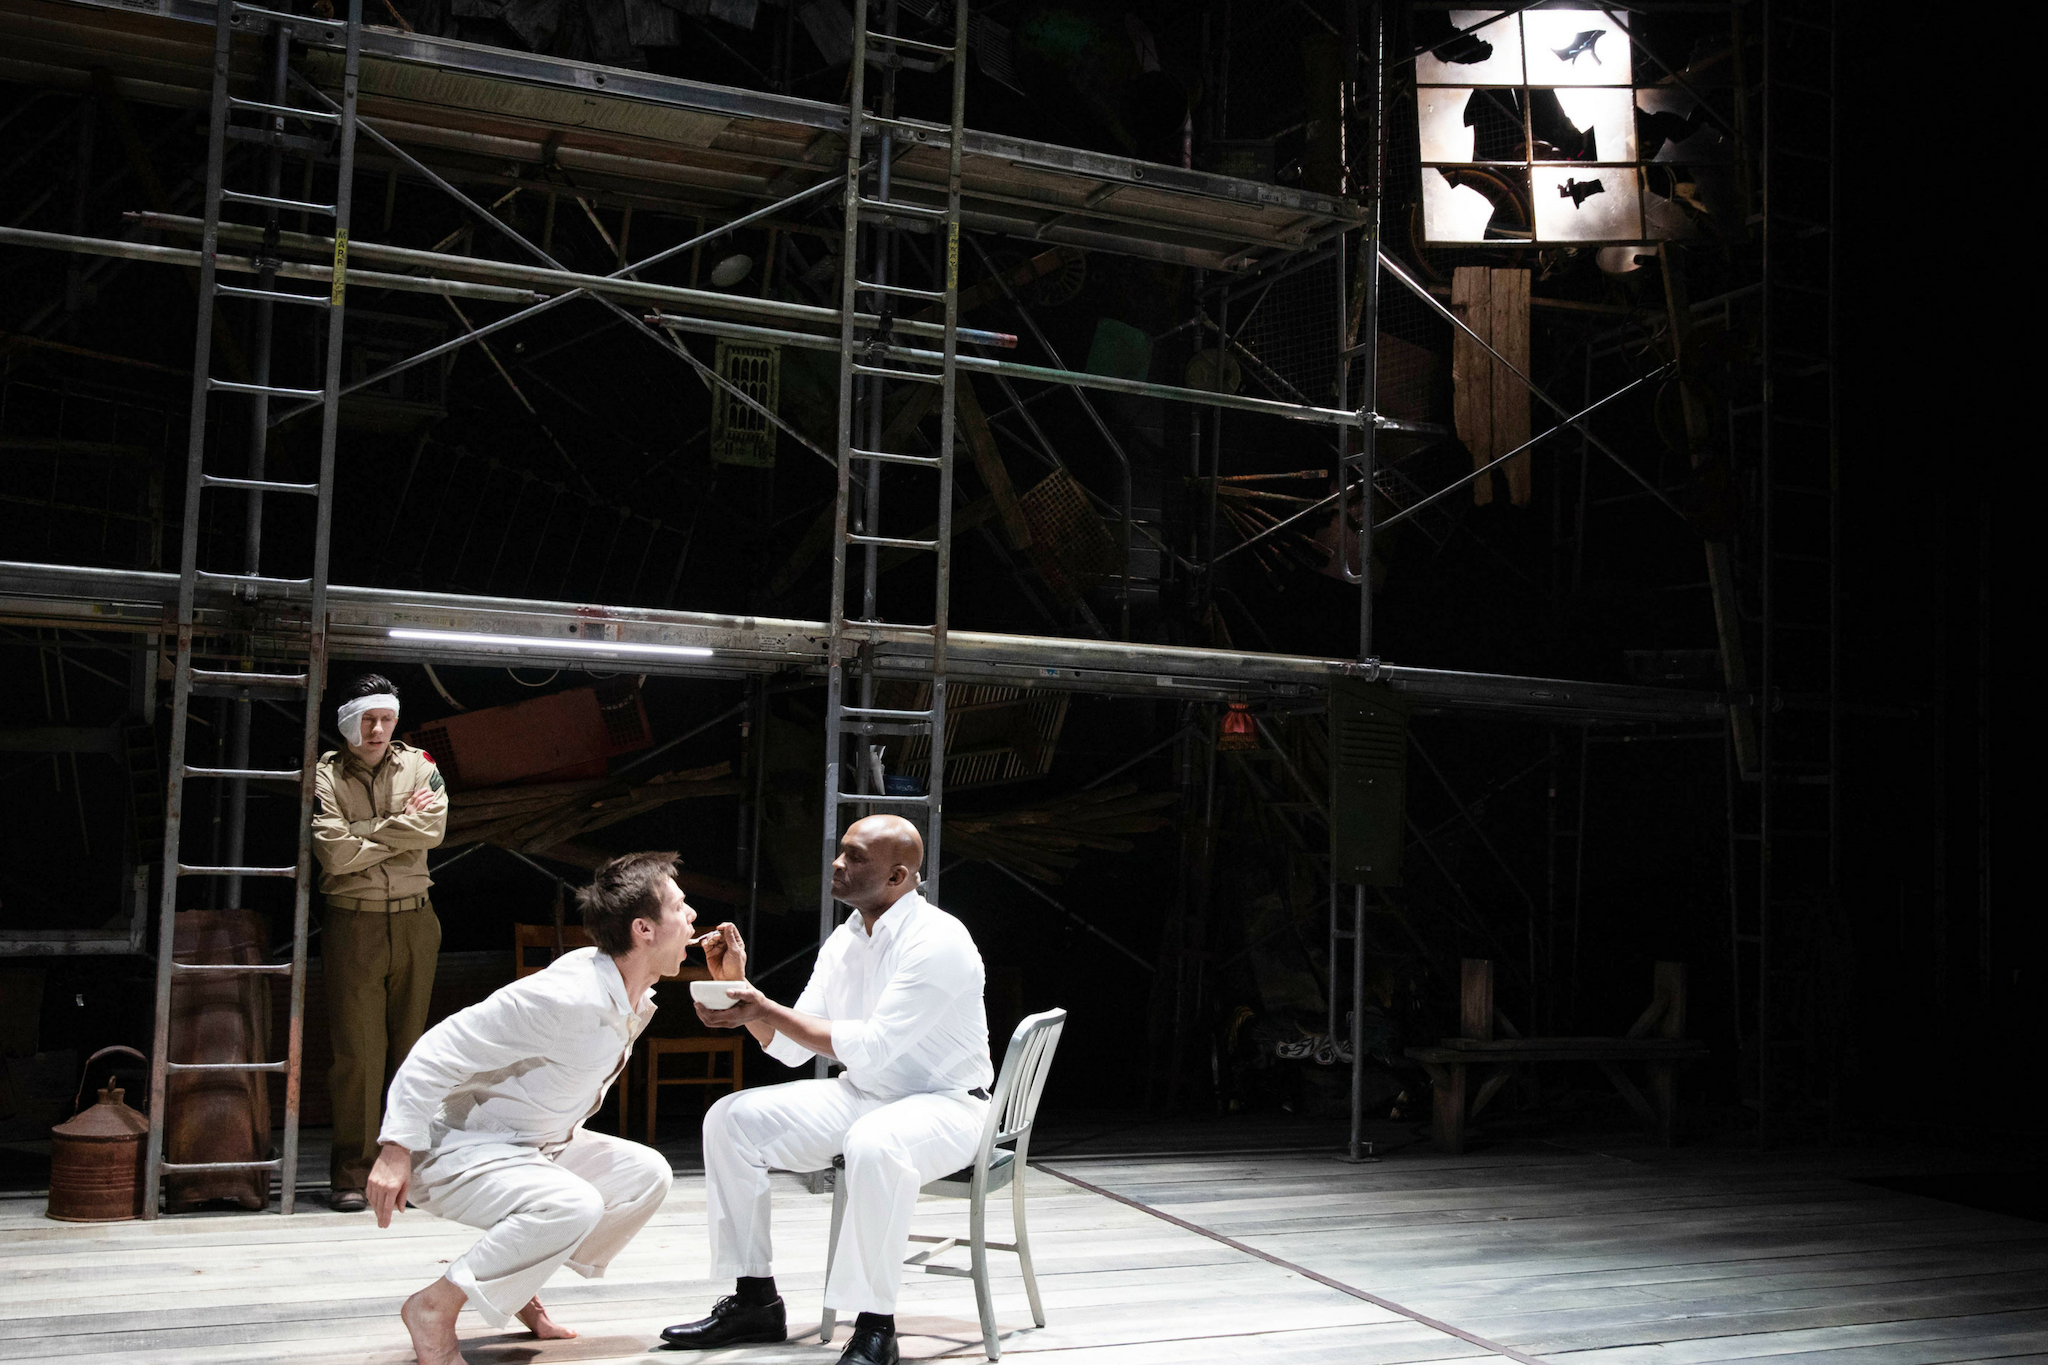 Keith White (Al), Will Taylor (Birdy), and Damon Singletary (Renaldi) in Birdy, 2019-Photo by Evgenia Eliseeva